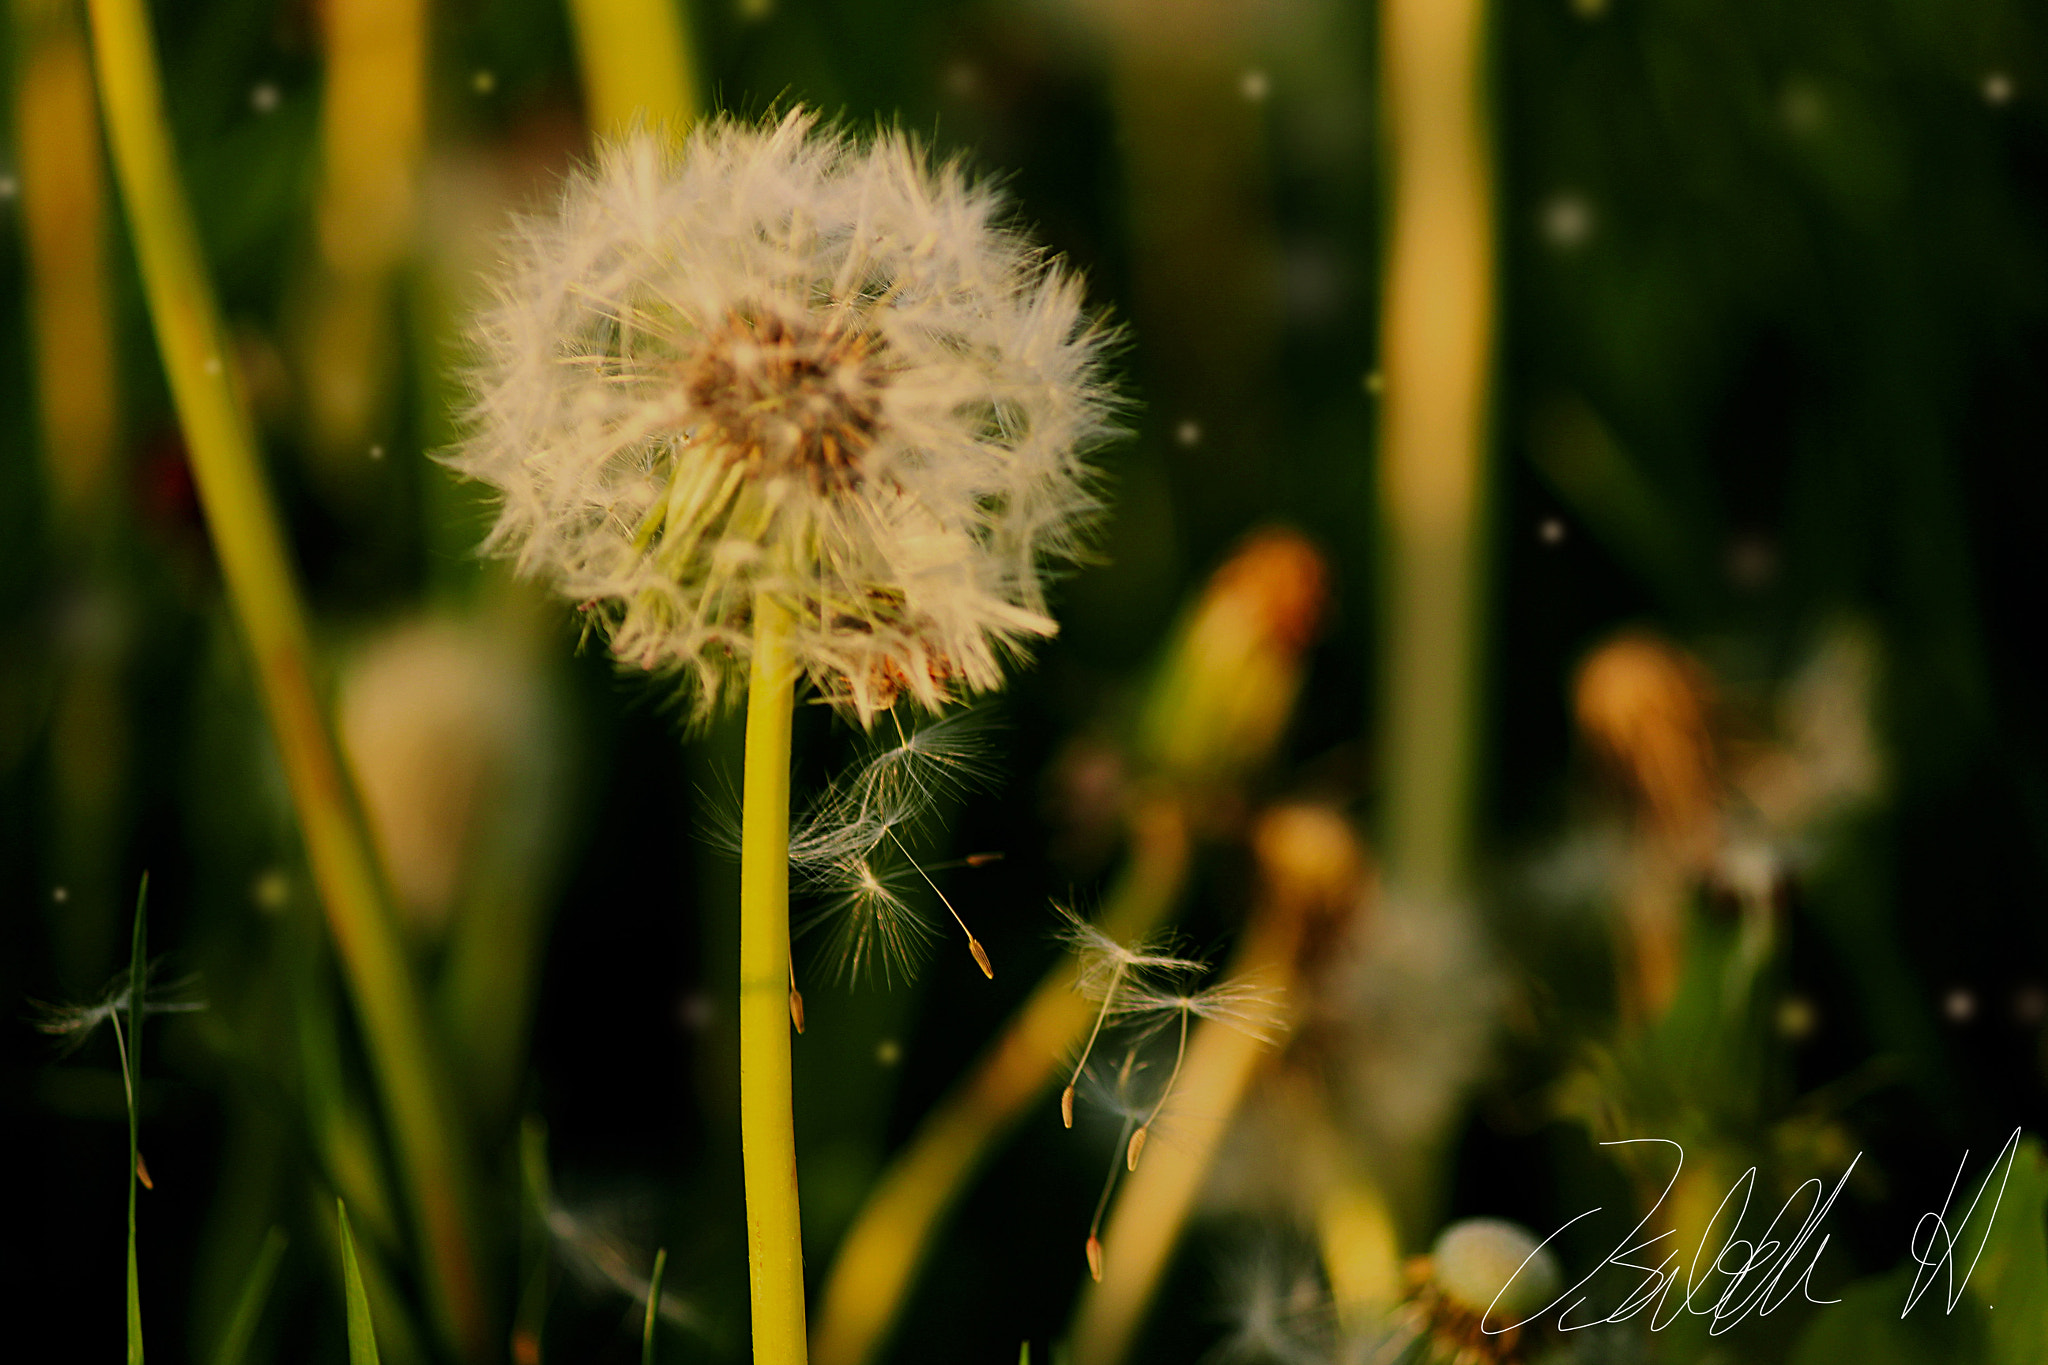 Photograph Dandelion by Isabelle Han on 500px